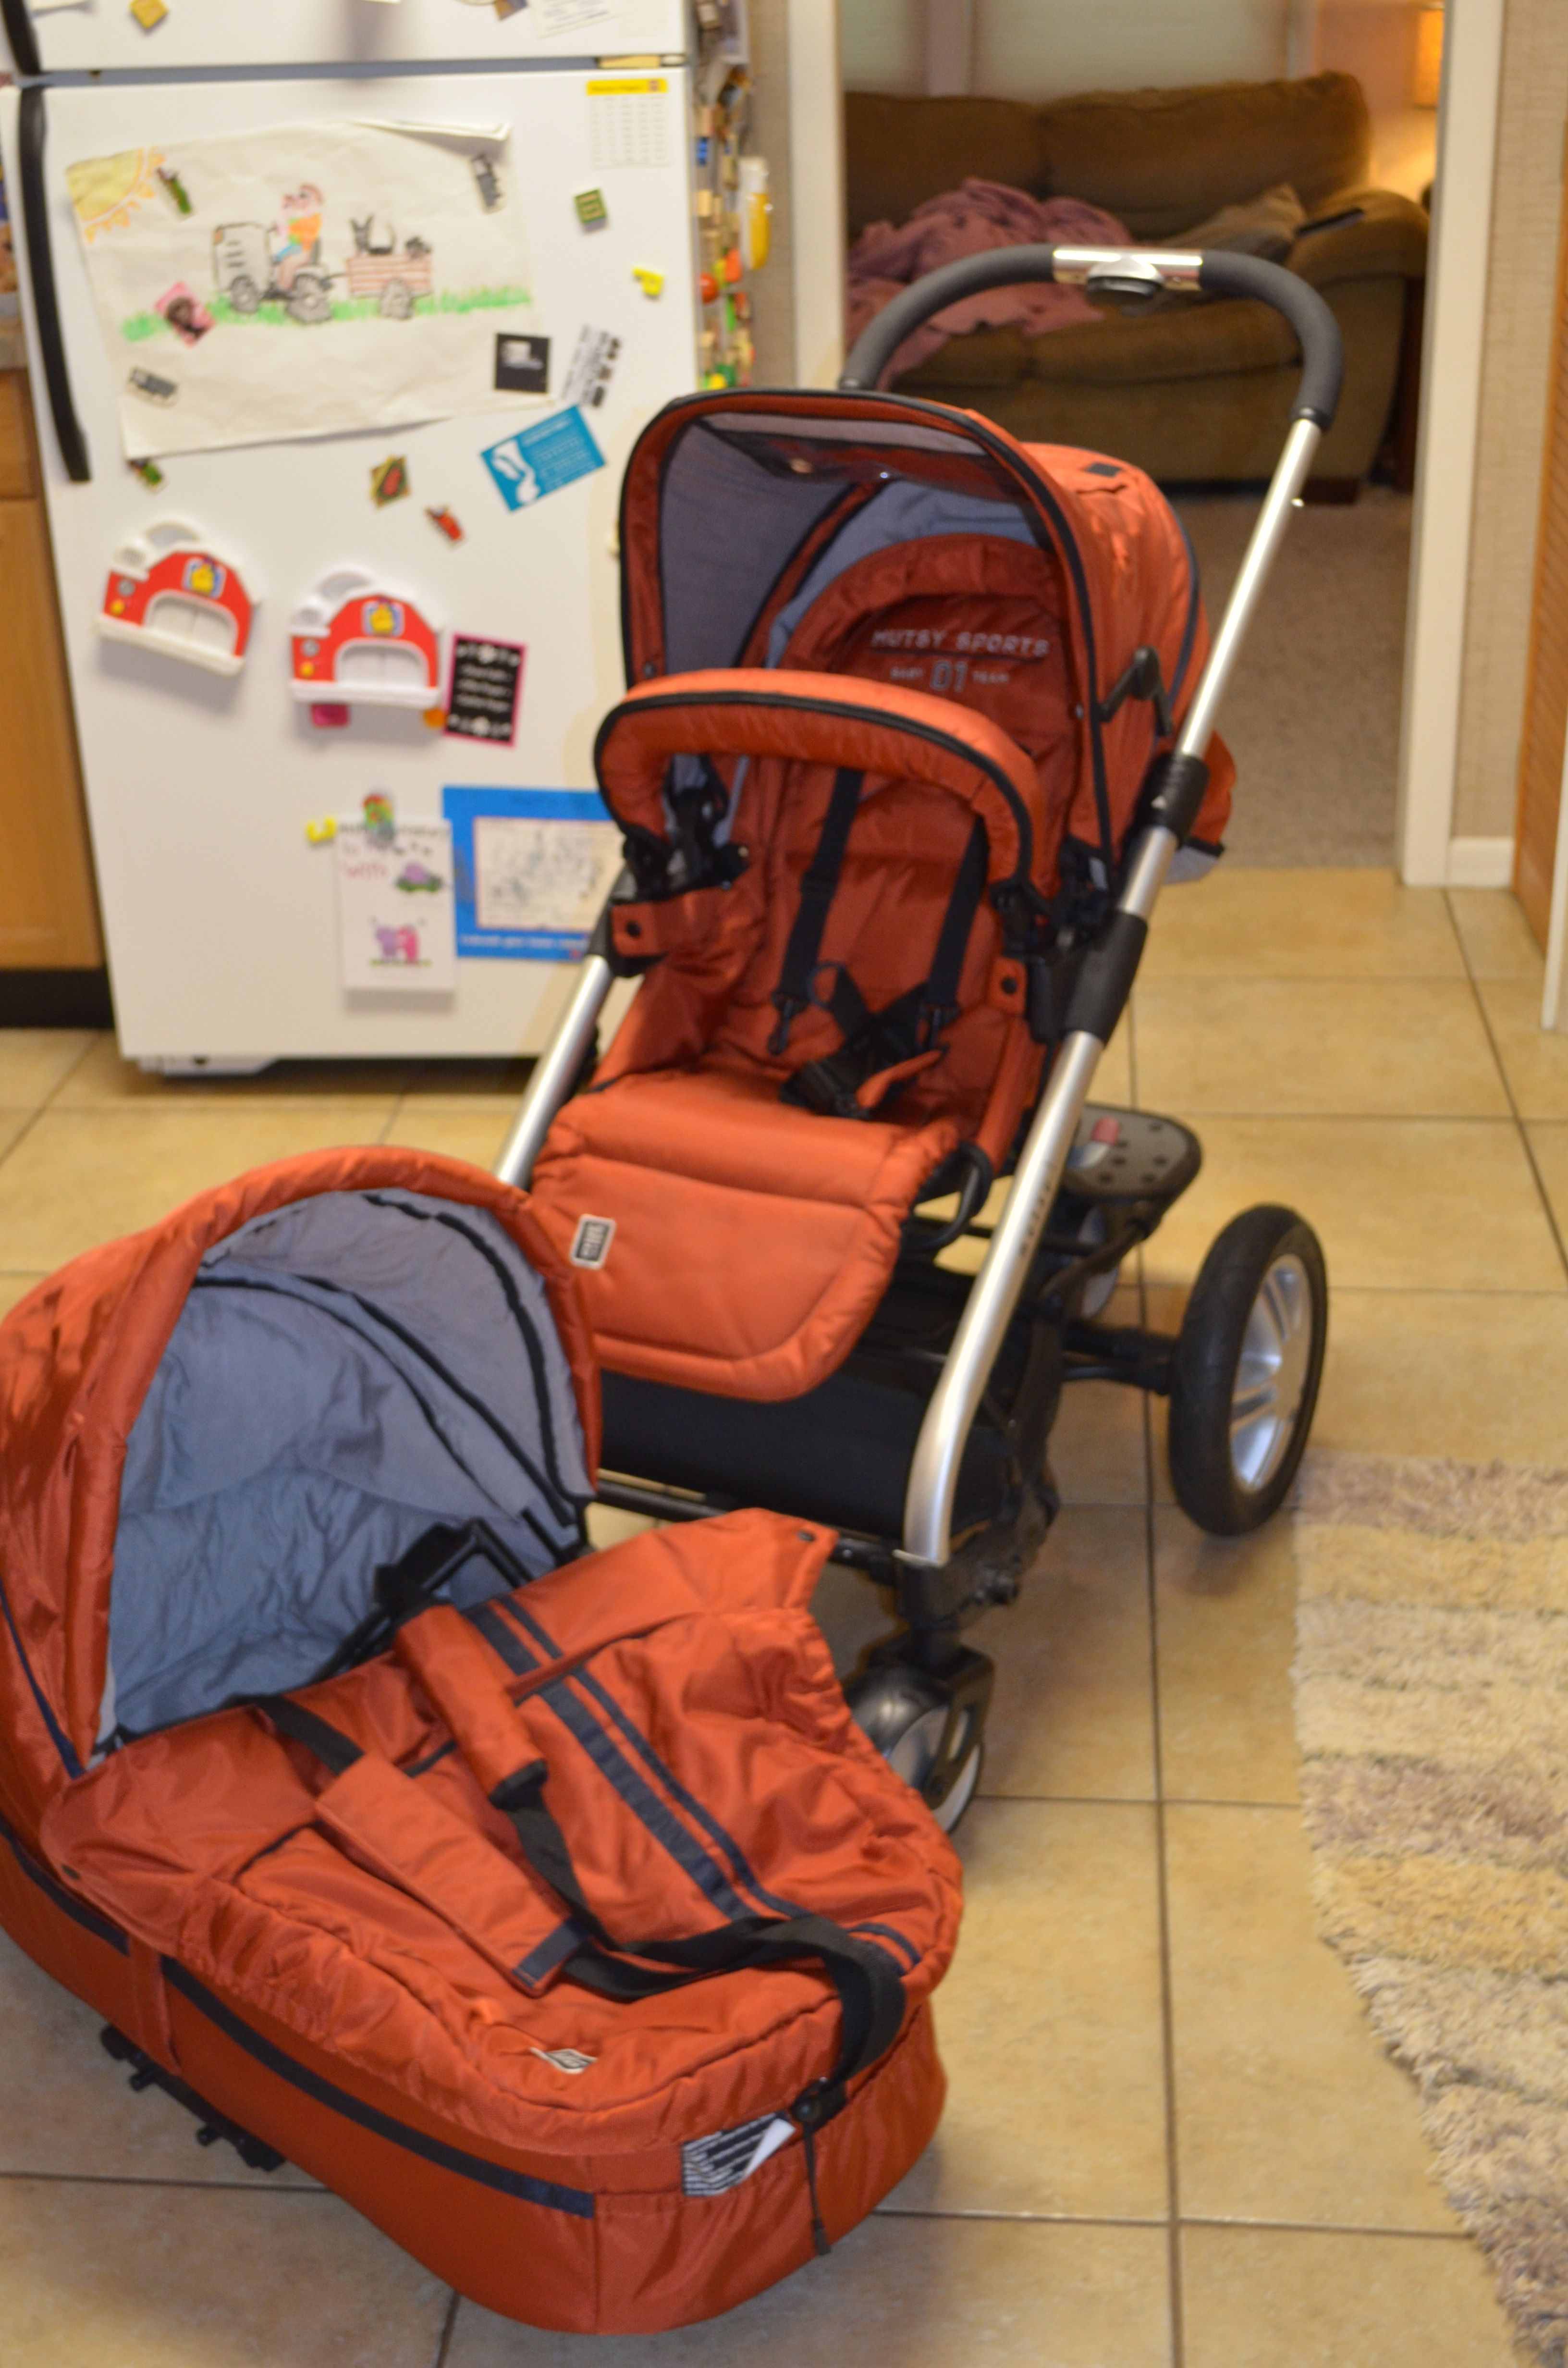 Mutsy stroller that comes with different attachments so